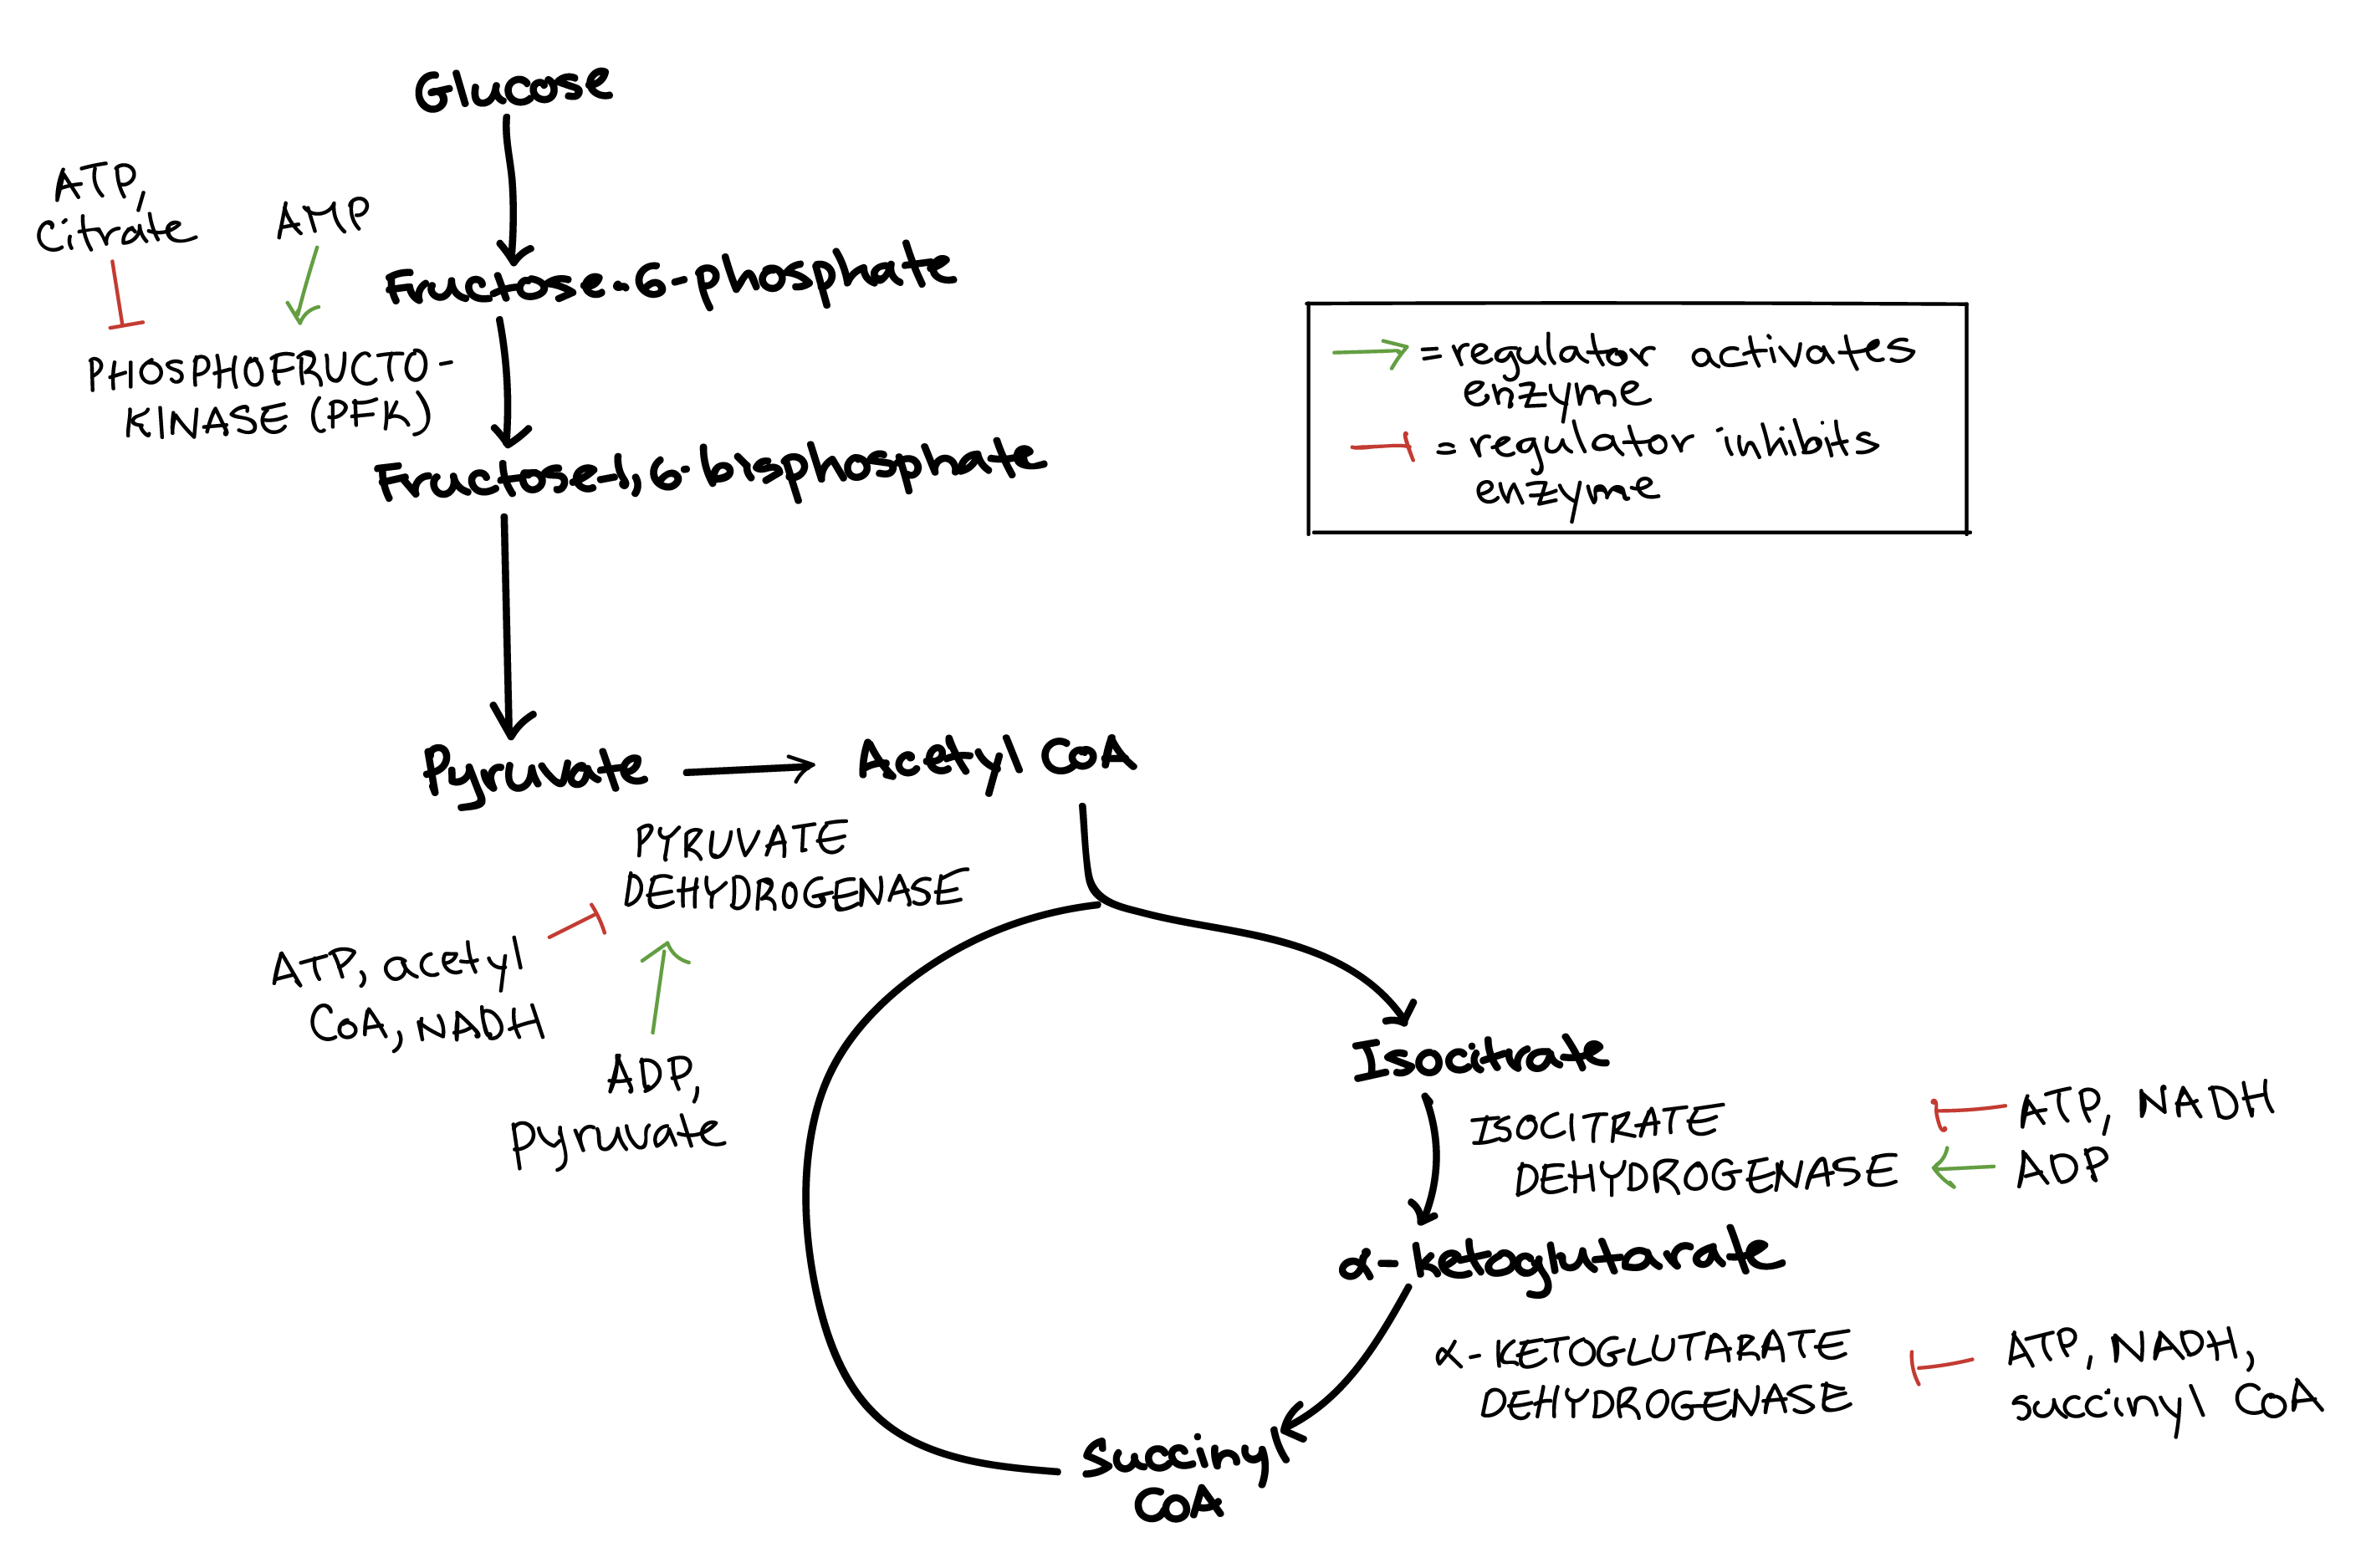 Regulation of cellular respiration article khan academy diagram summarizing the regulation of cellular respiration during glycolysis pyruvate oxidation and the citric acid cycle this diagram simply combines ccuart Choice Image